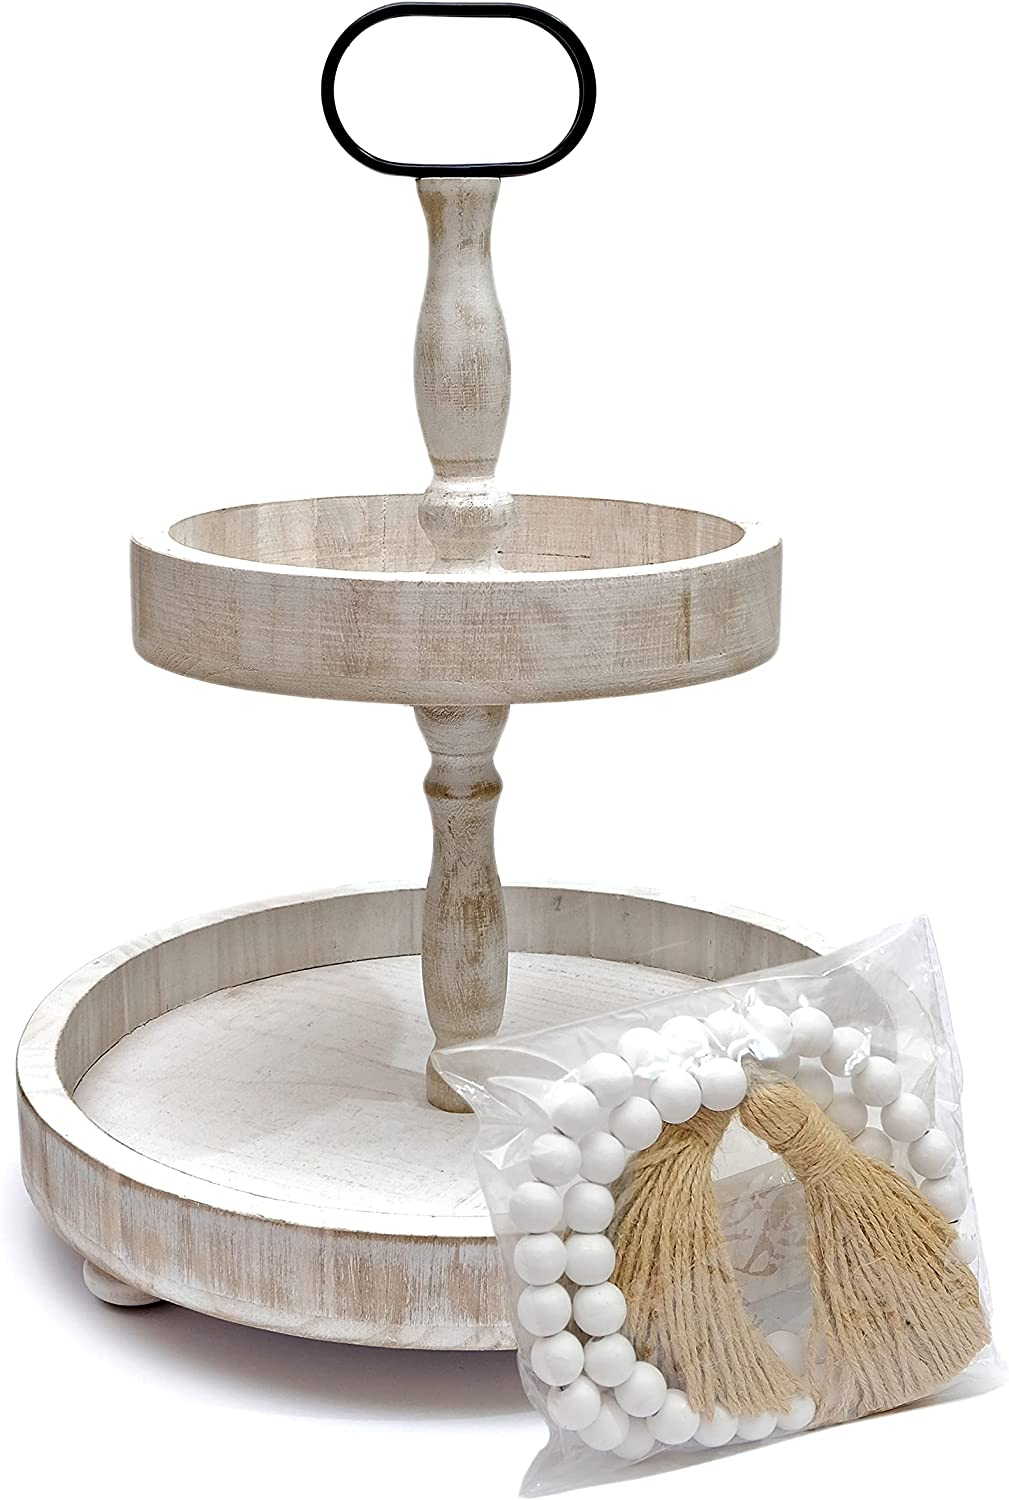 High order Farmhouse Tiered Tray with Ranking TOP7 Beads Home Decor Tier Round C 2